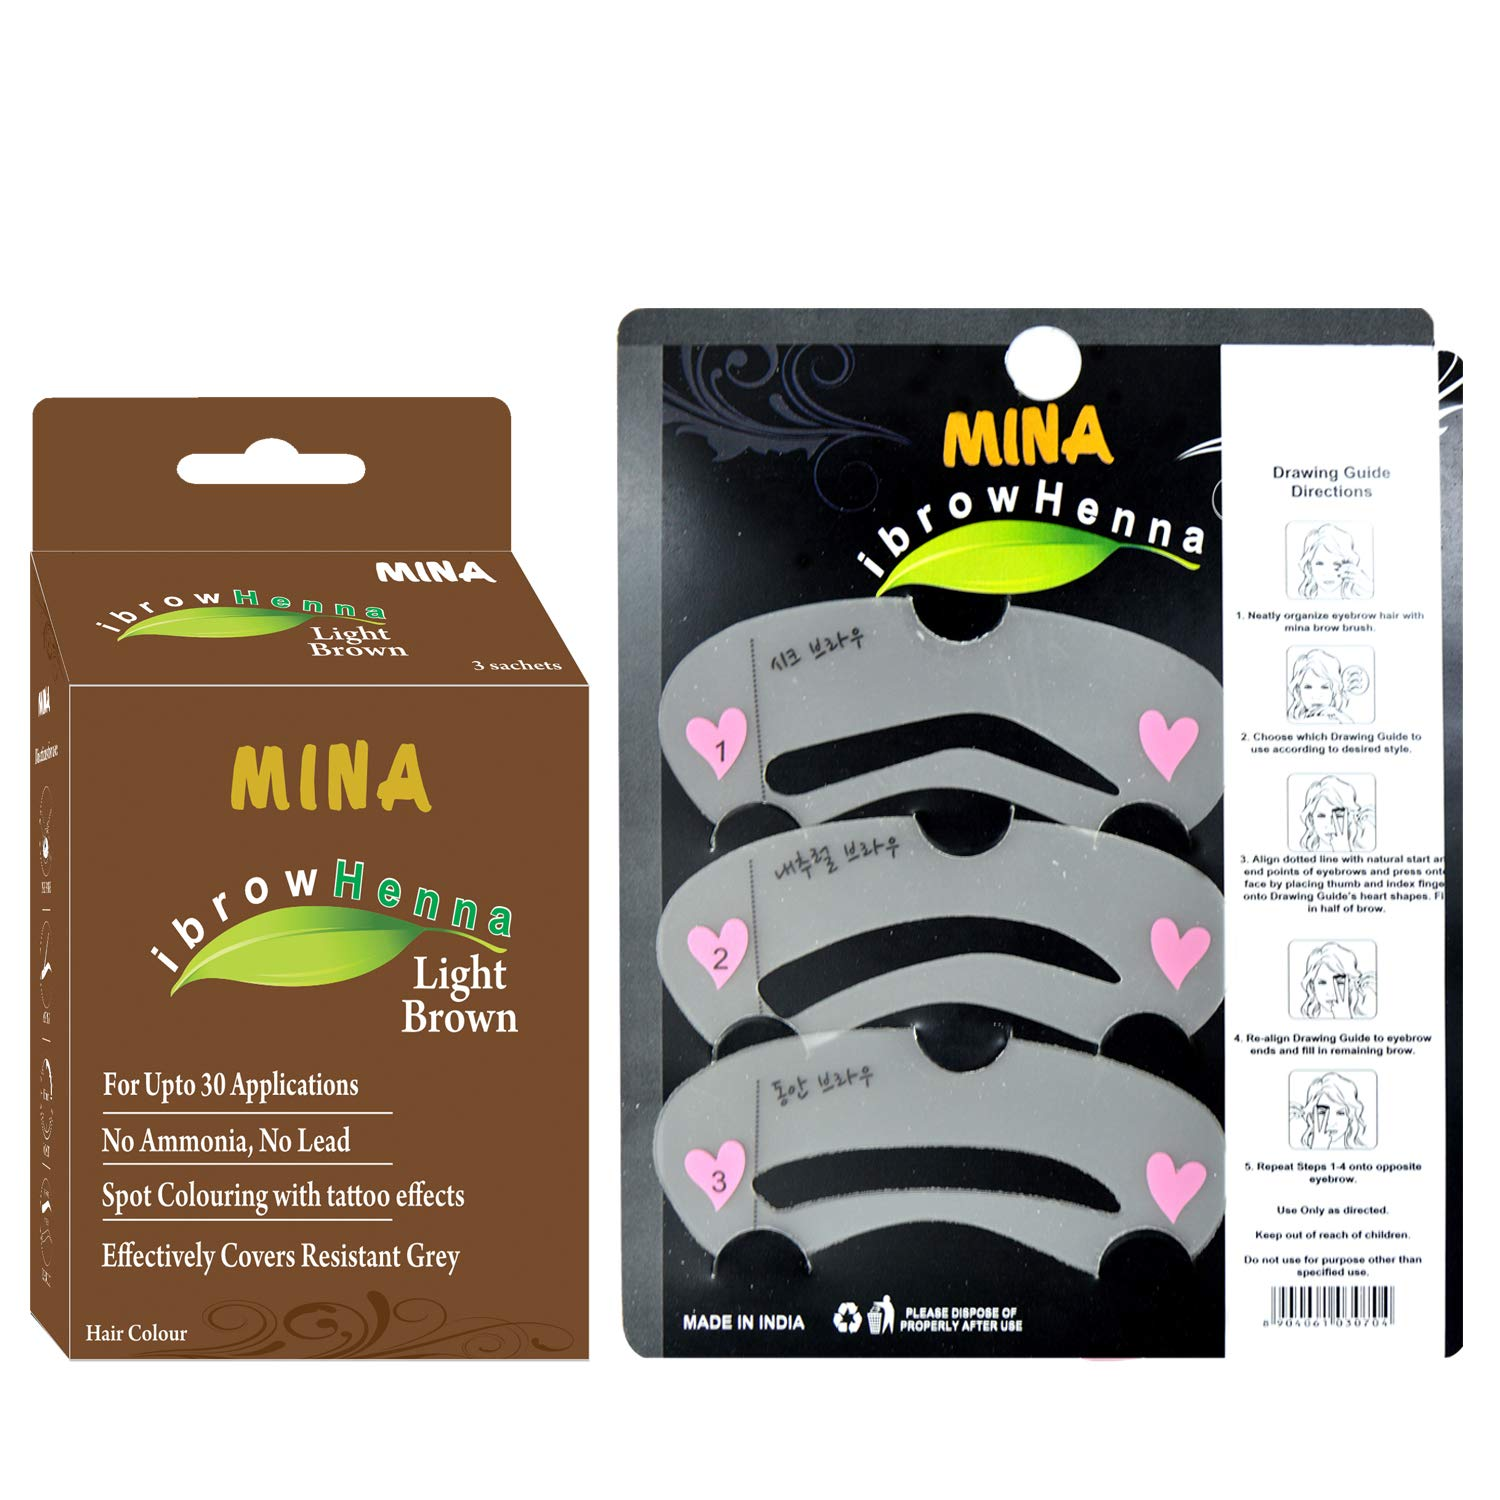 Mina ibrow Henna Tinting Kit & Regular Pack Light Brown with Eyebrow Stencils-Combo Pack by Mina